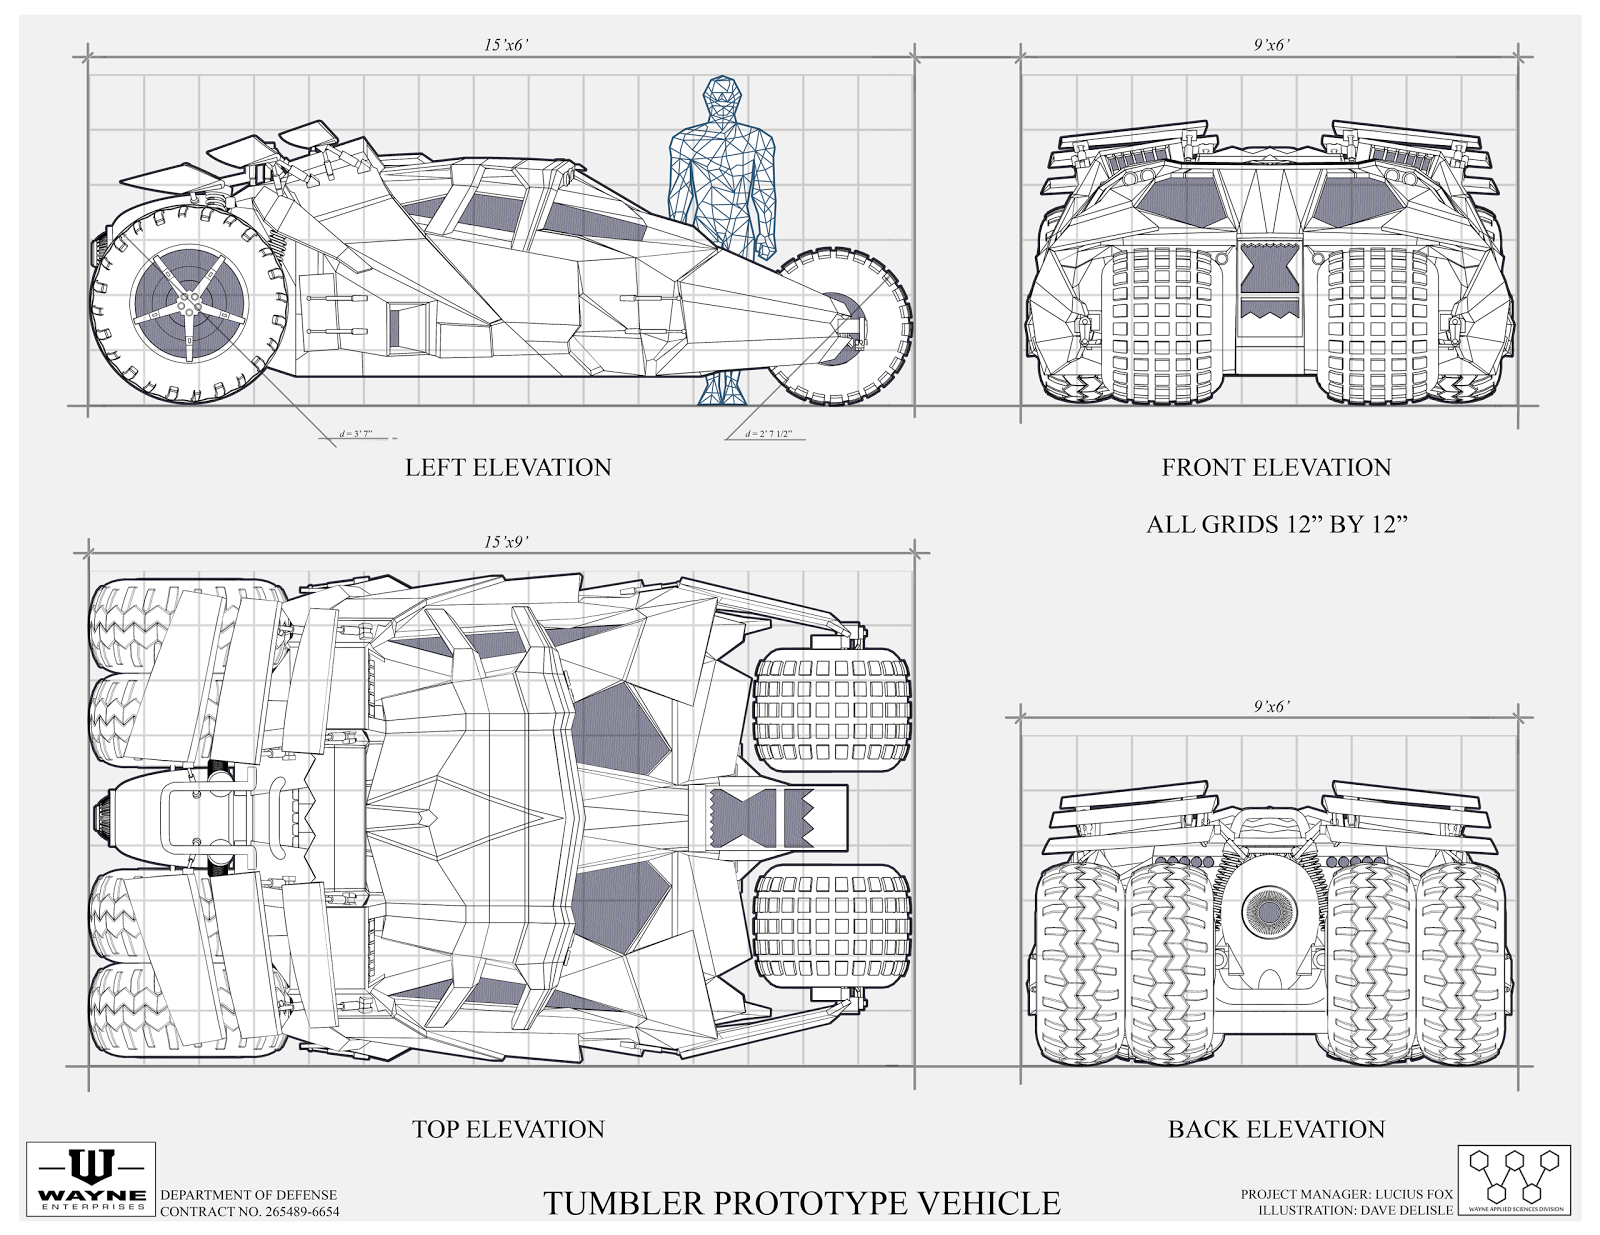 five amazing batmobile concept designs  u00ab film sketchr